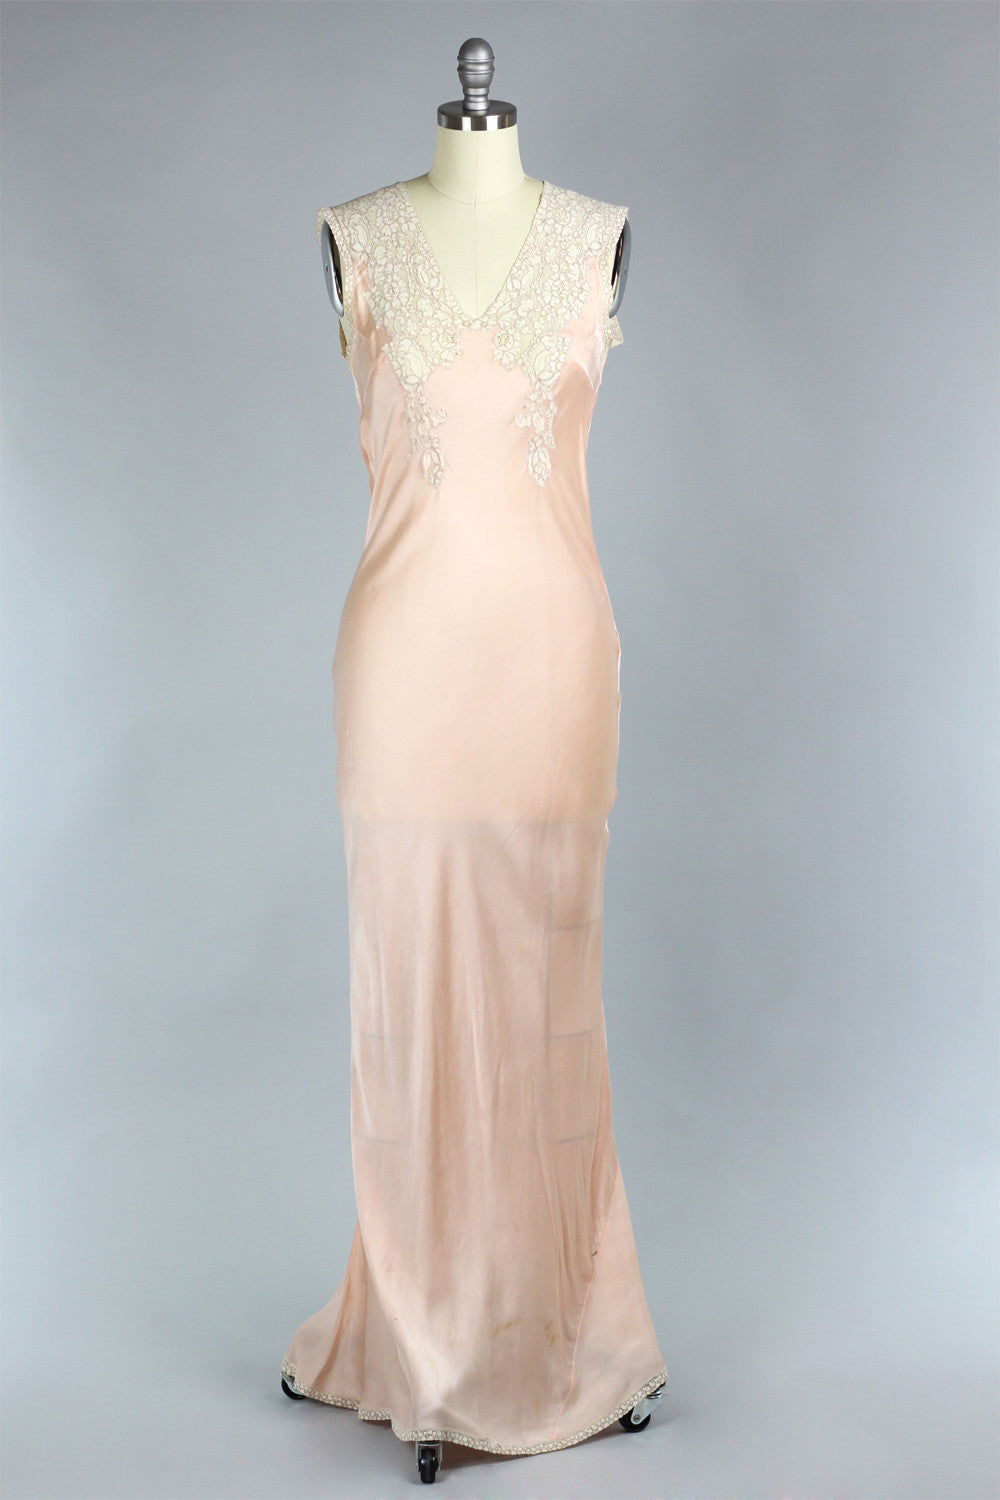 Perle D\'Or 1930s Silk Charmeuse Gown with French Lace – The Vintage Net